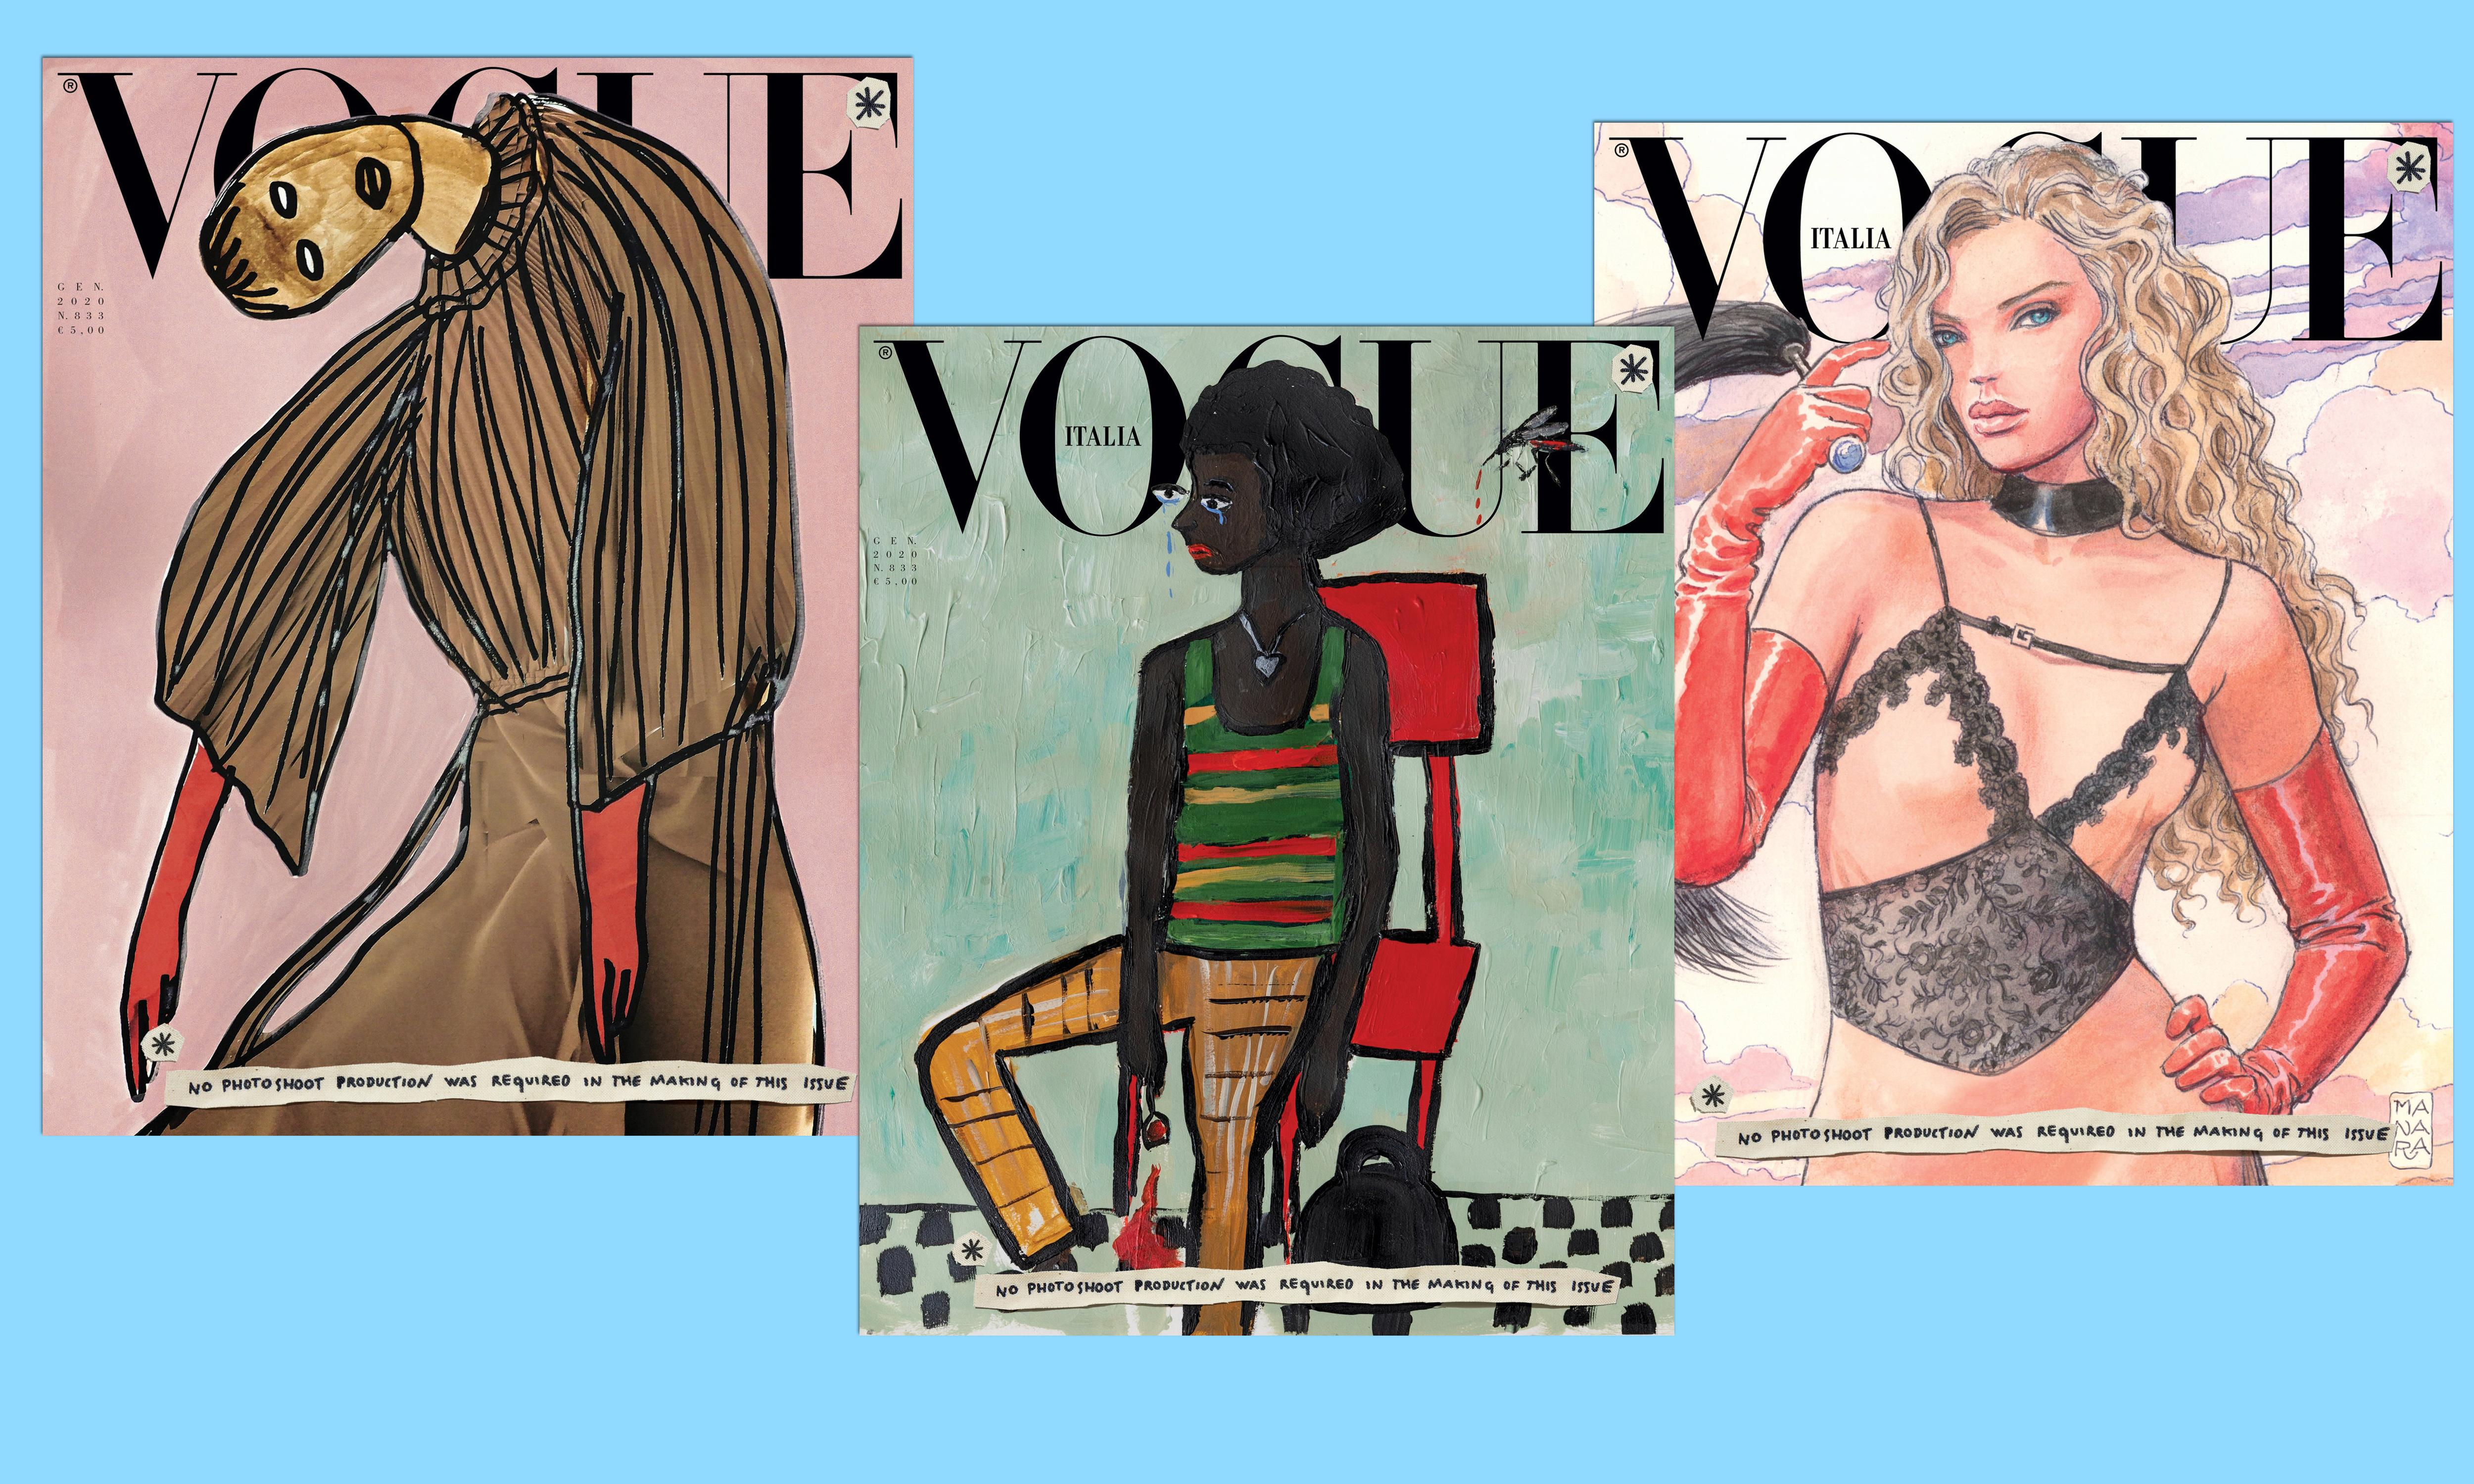 Vogue Italia drops photoshoots from January issue in green statement